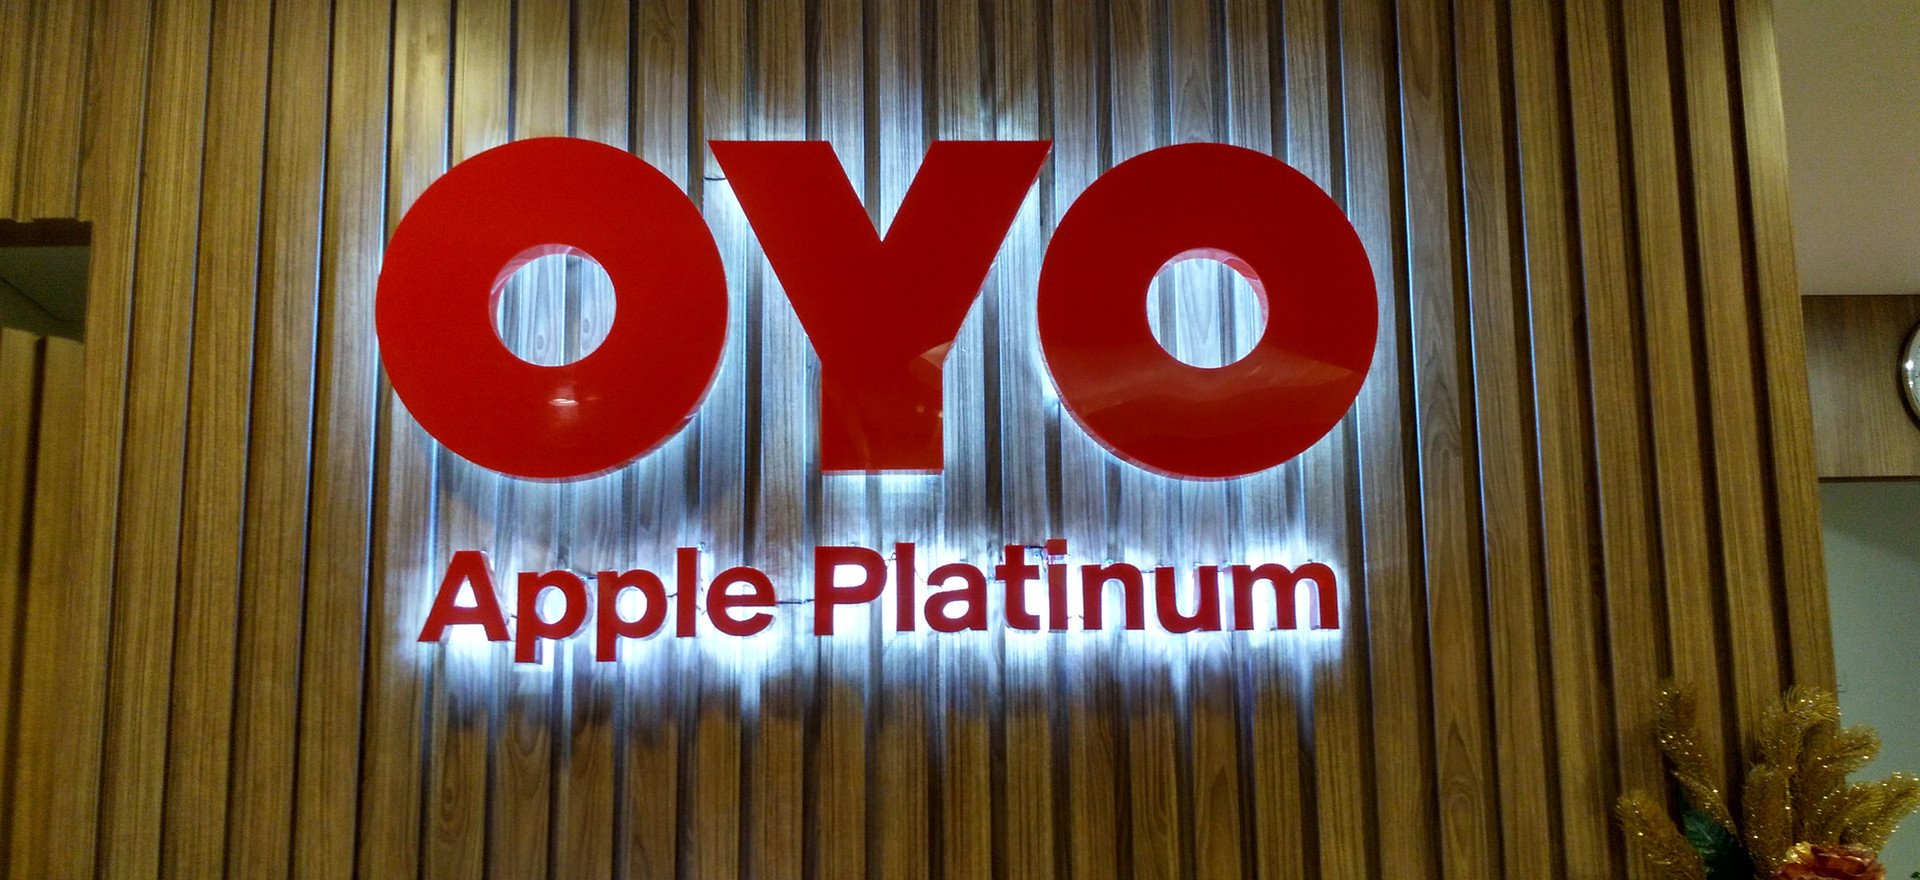 OYO Apple Platinum Receiptionist Signage